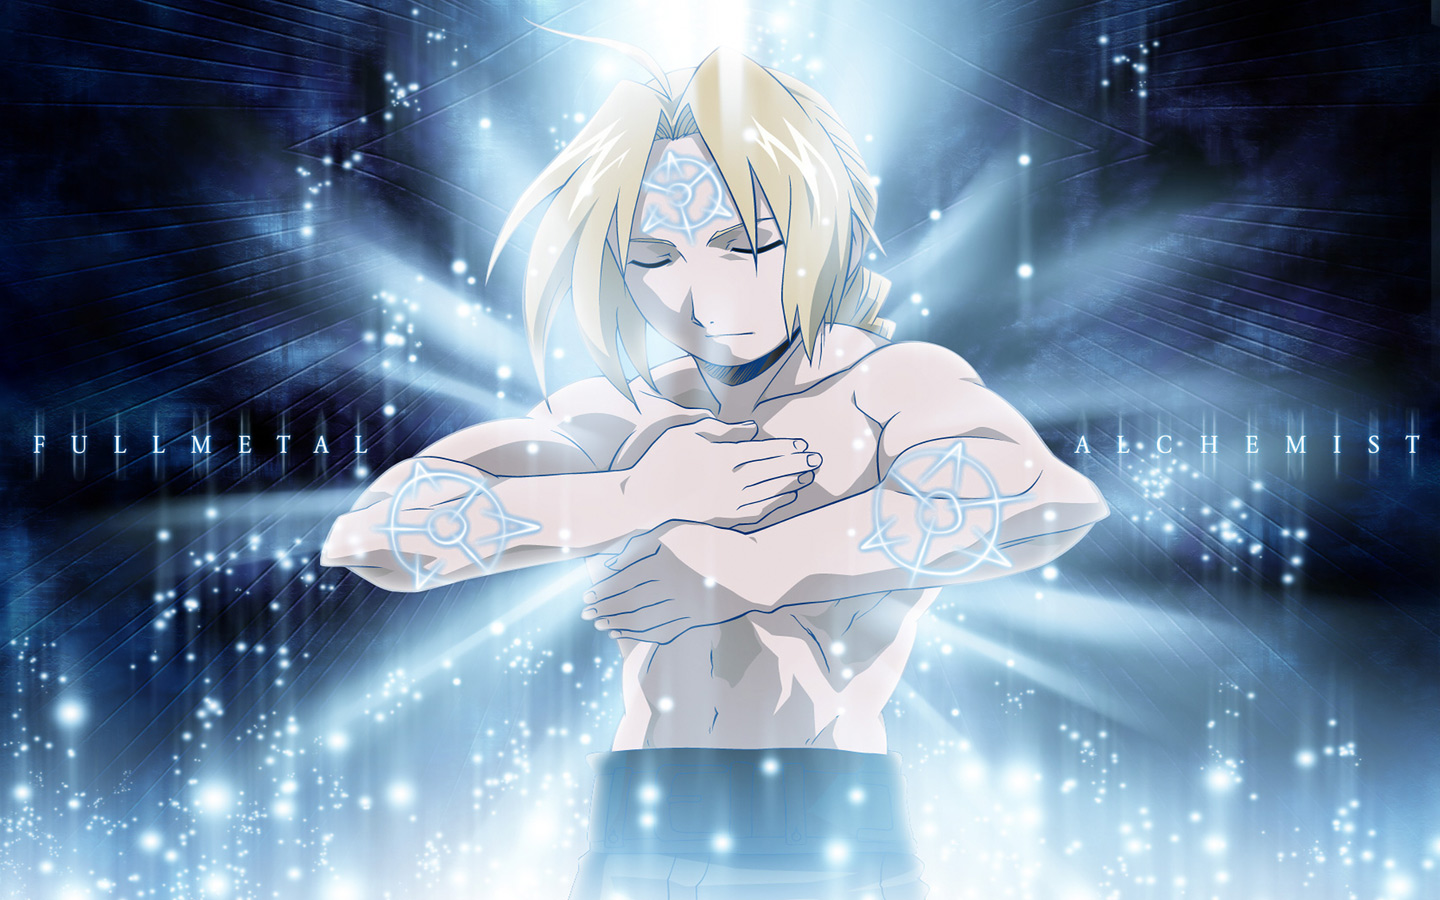 Full Metal Alchemist HD & Widescreen Wallpaper 0.368315147793818